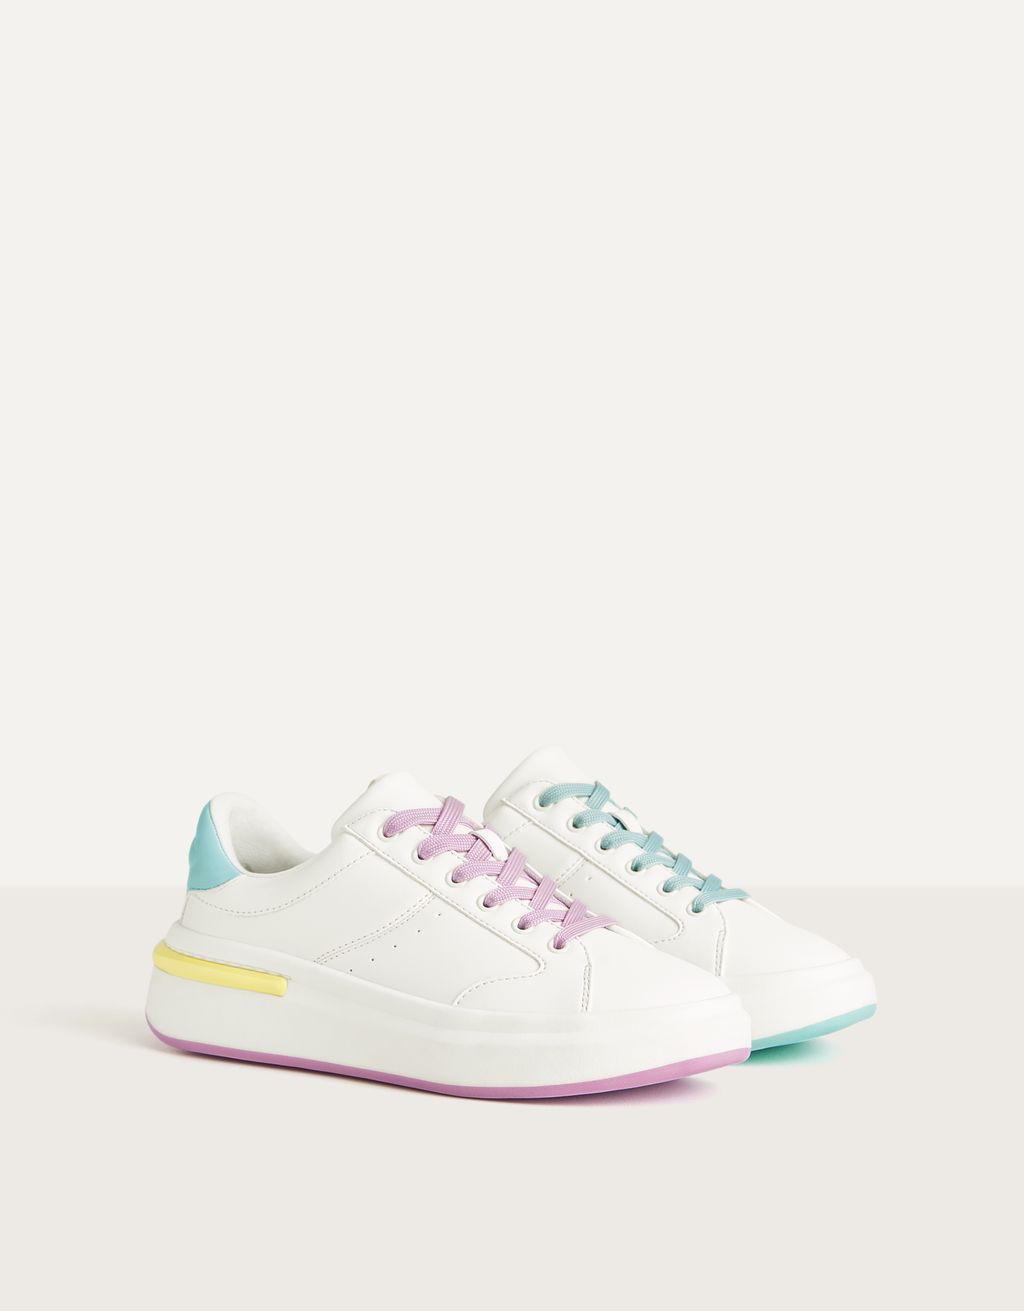 Sneakers with multicolored contrast